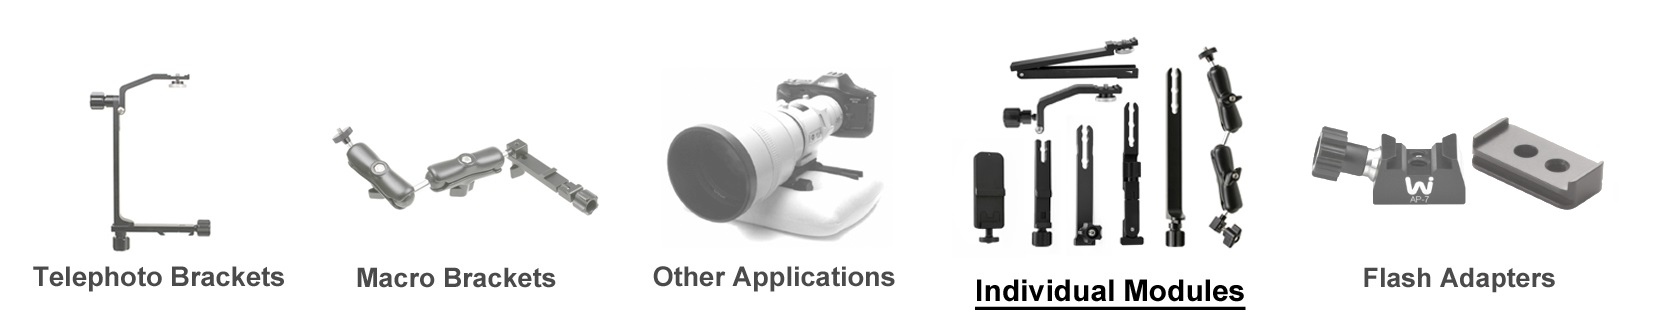 Collage of WimberleyTelephoto Bracket highlighted and Macro Bracket and modules and accessories